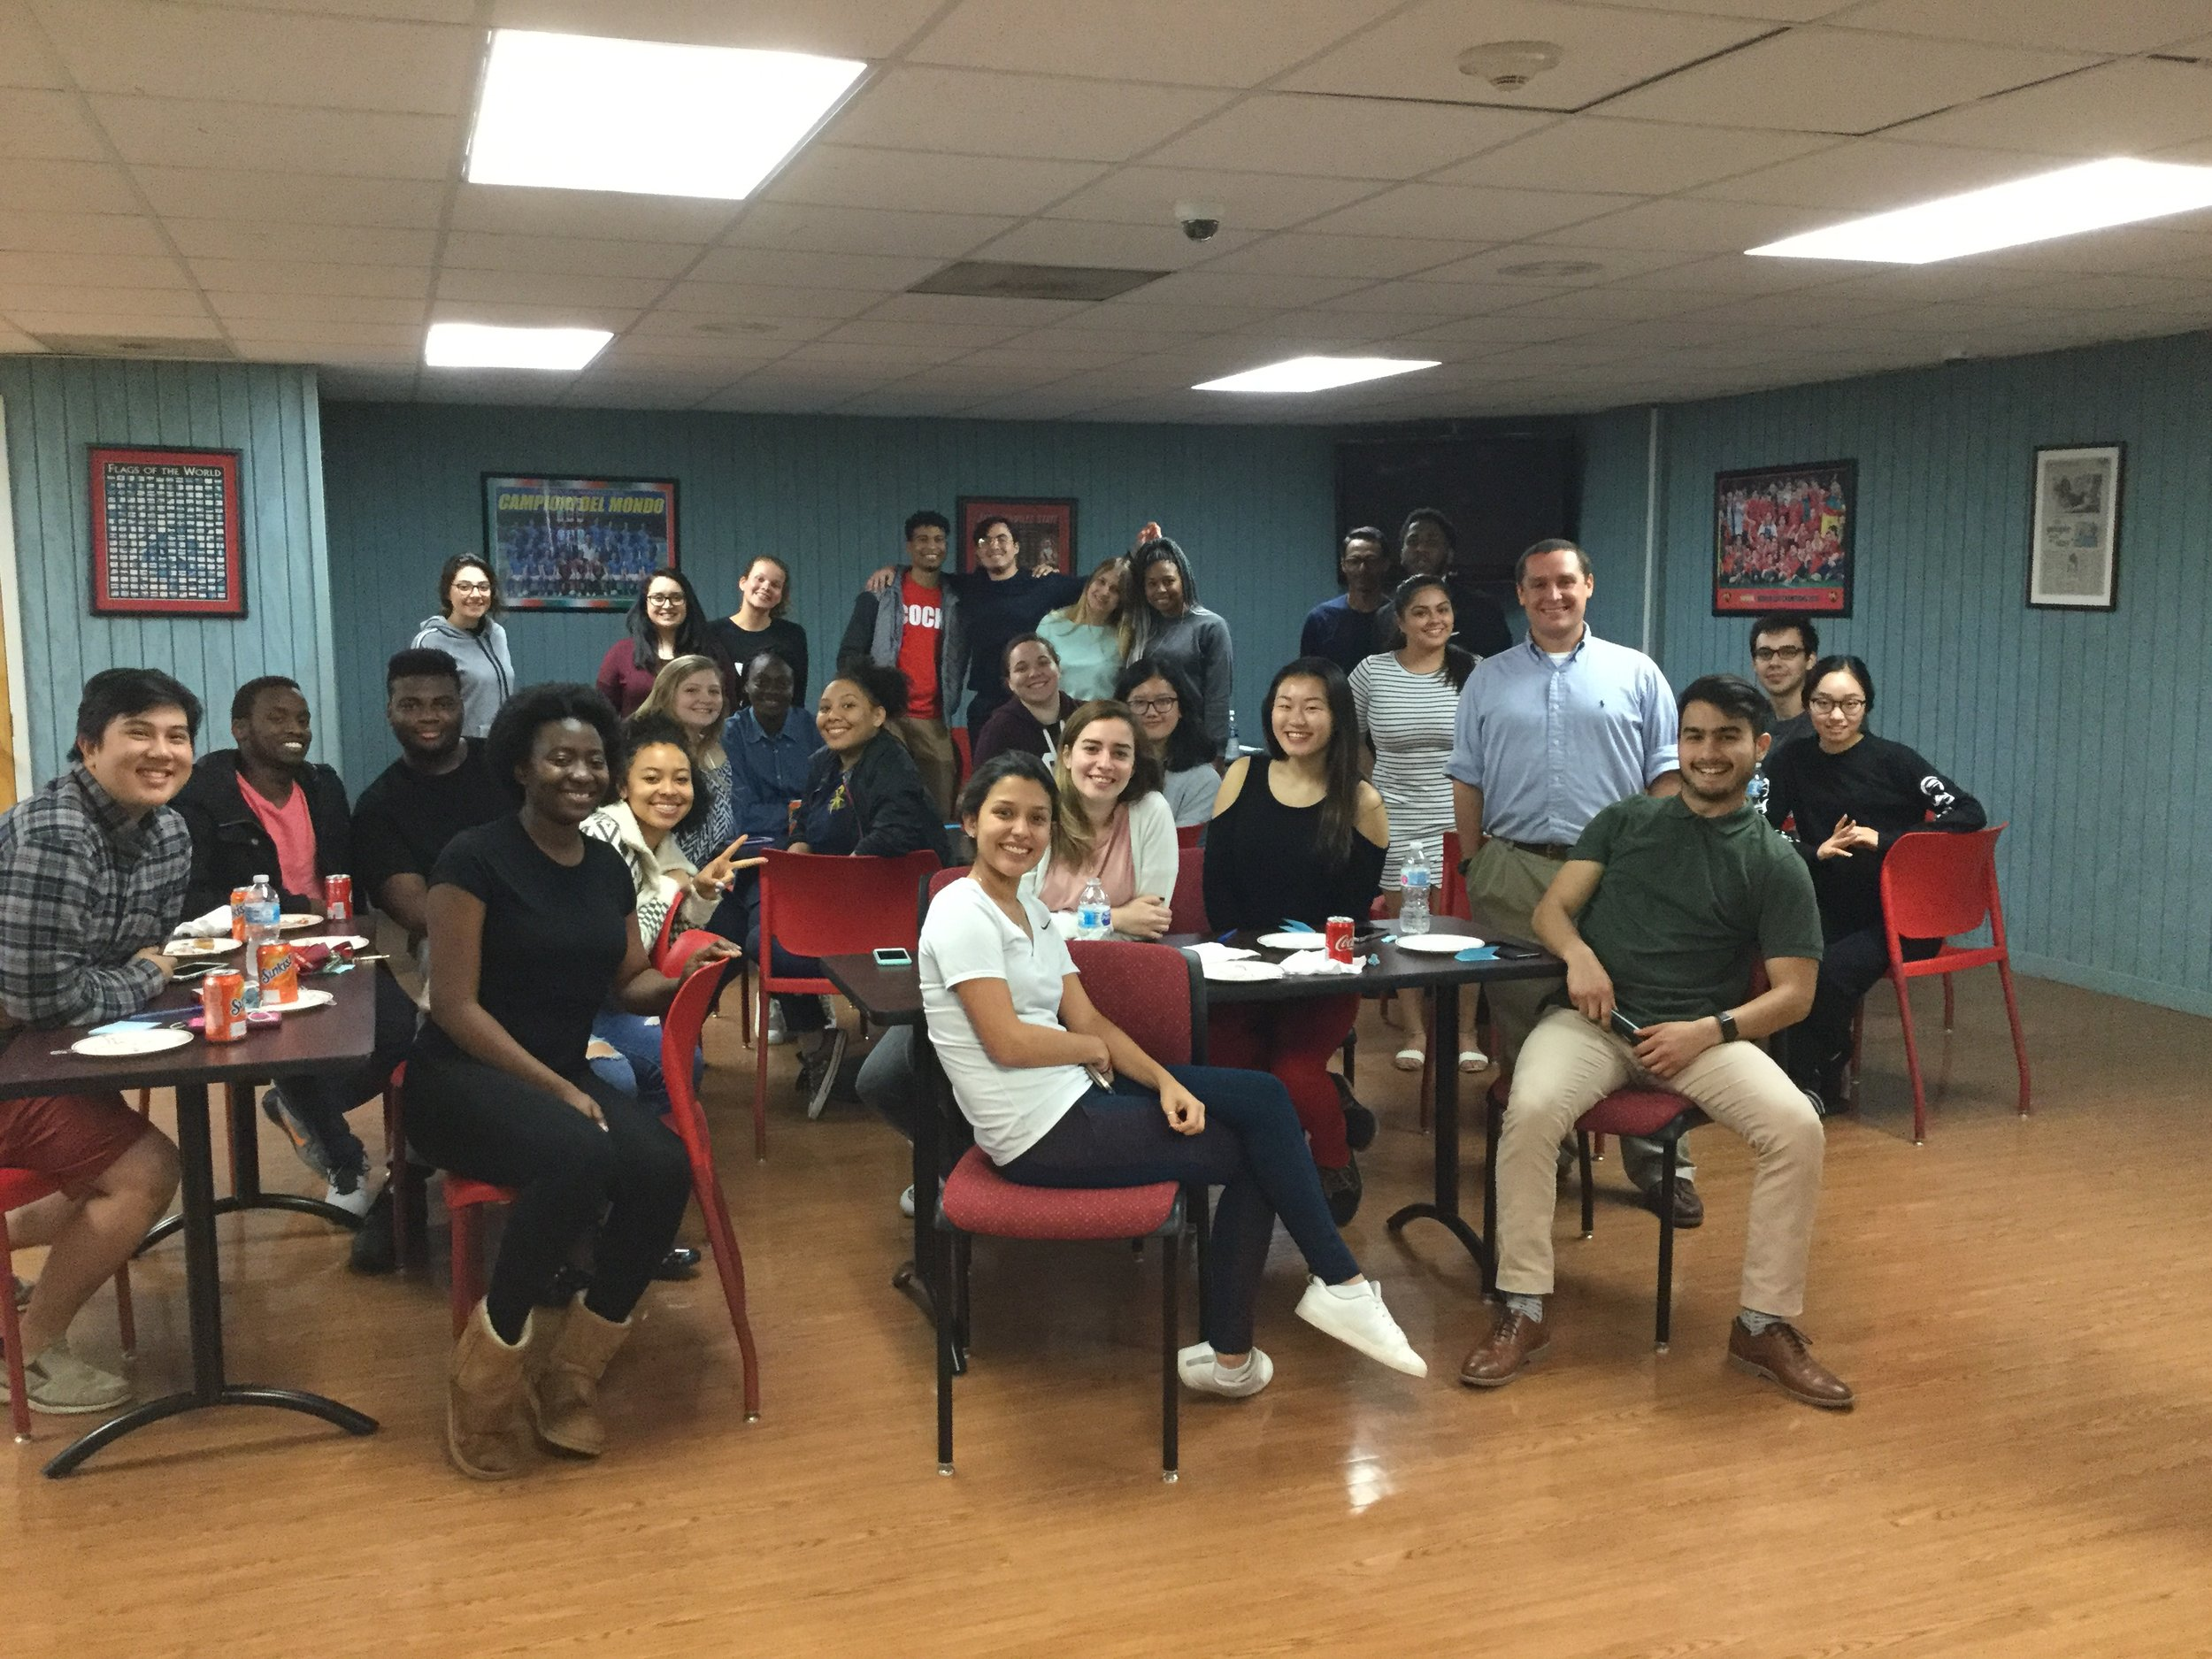 The amazing students at JSU's International House! We had a great time that night, and now my wife and I are glad to be able to help them out in the aftermath of the recent tornado.